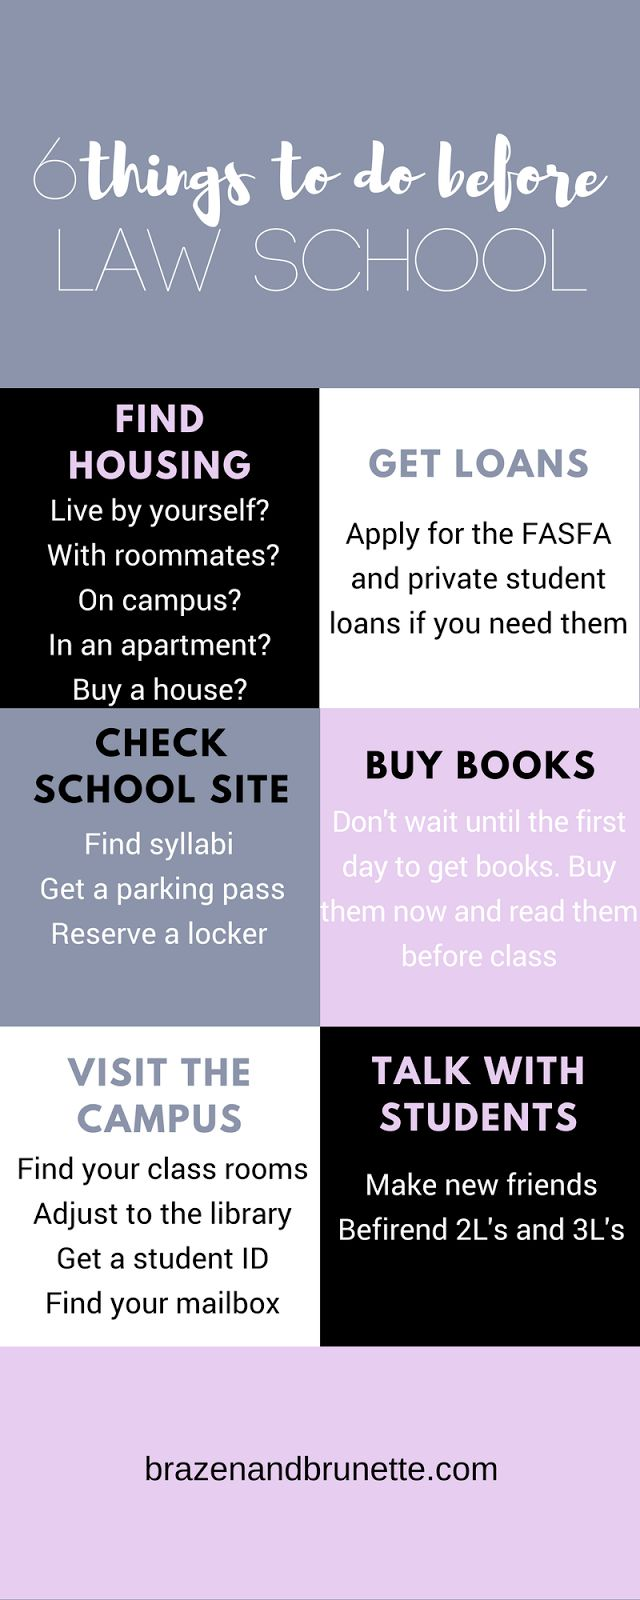 6 things to do before law school | brazenandbrunette.com